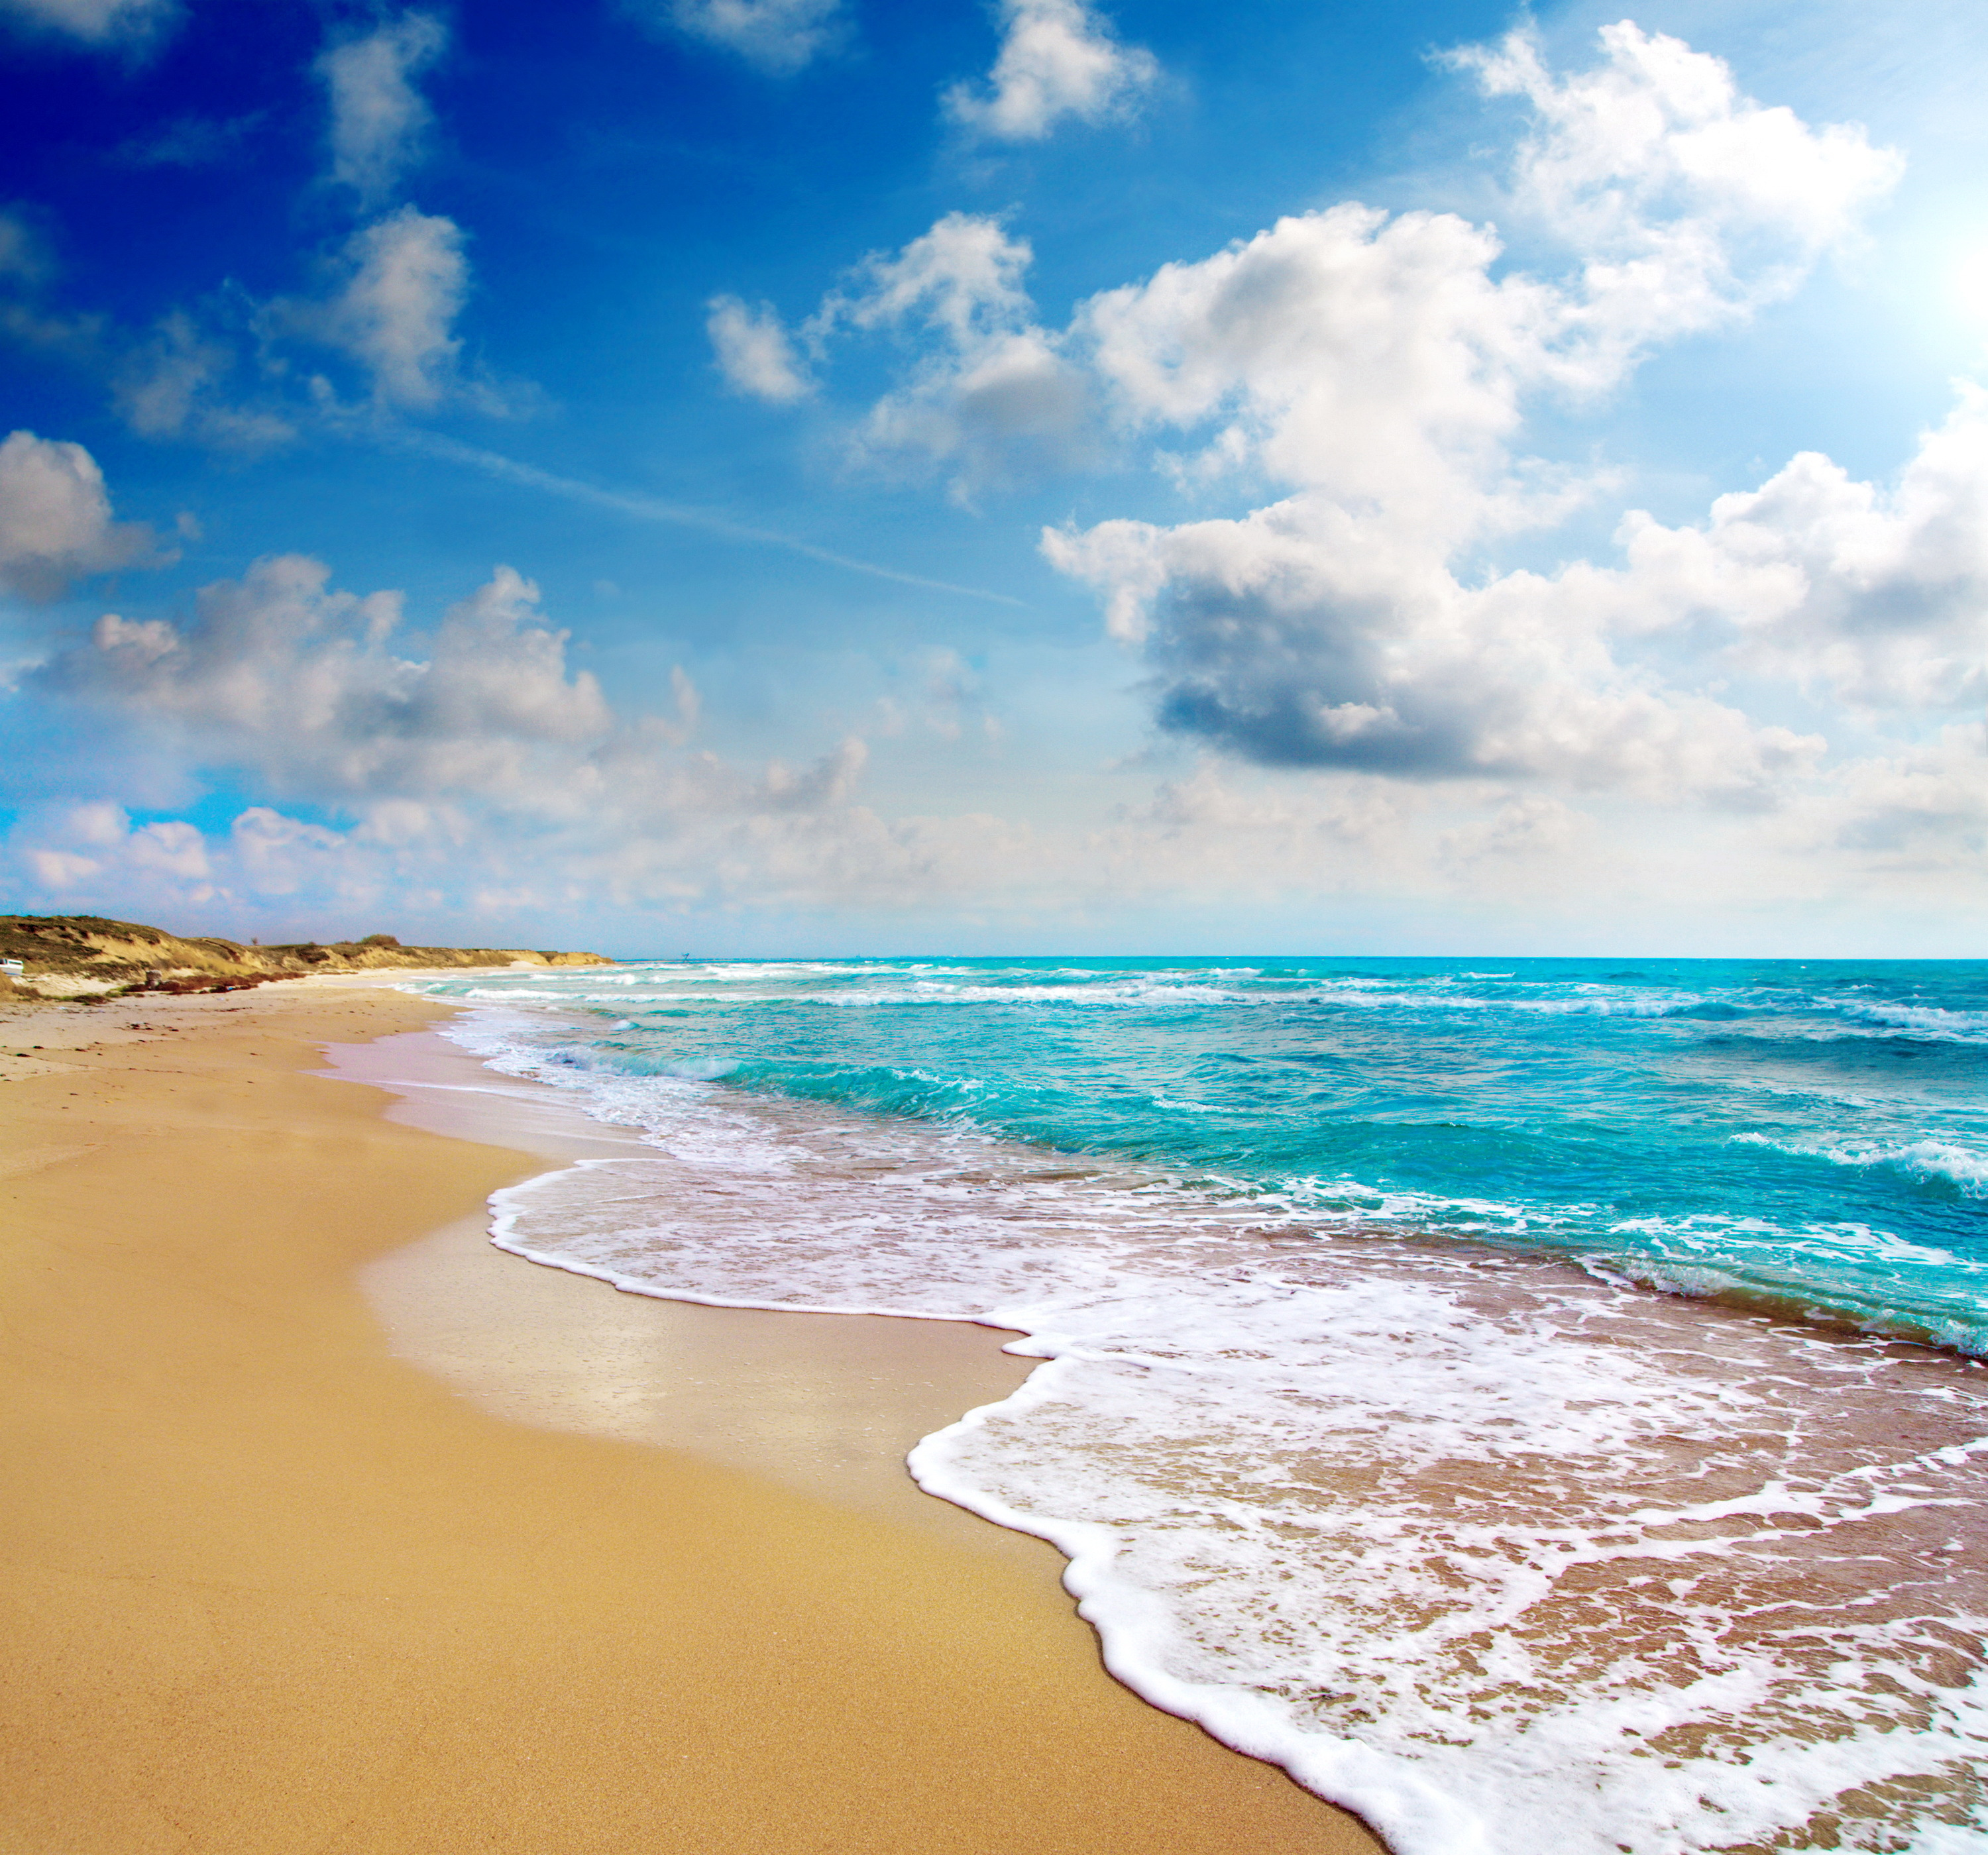 Tropical Beach And Peaceful Ocean: Paradise Beach Wallpaper